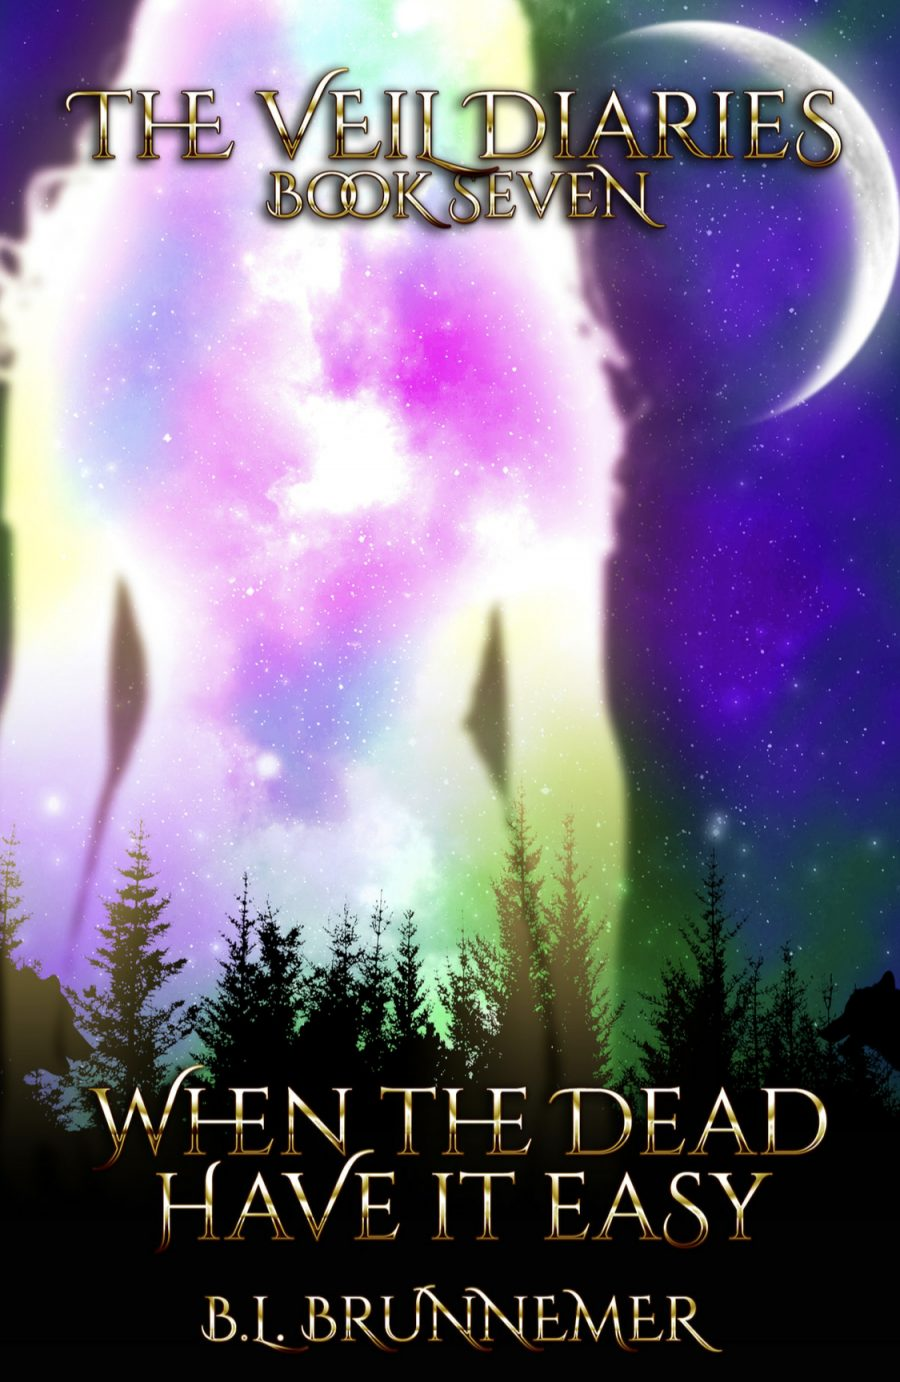 When The Dead Have It Easy by B.L. Brunnemer - A Book Review #BookReview #PNR #NA #SlowBurn #RH #ReverseHarem #School #MustRead